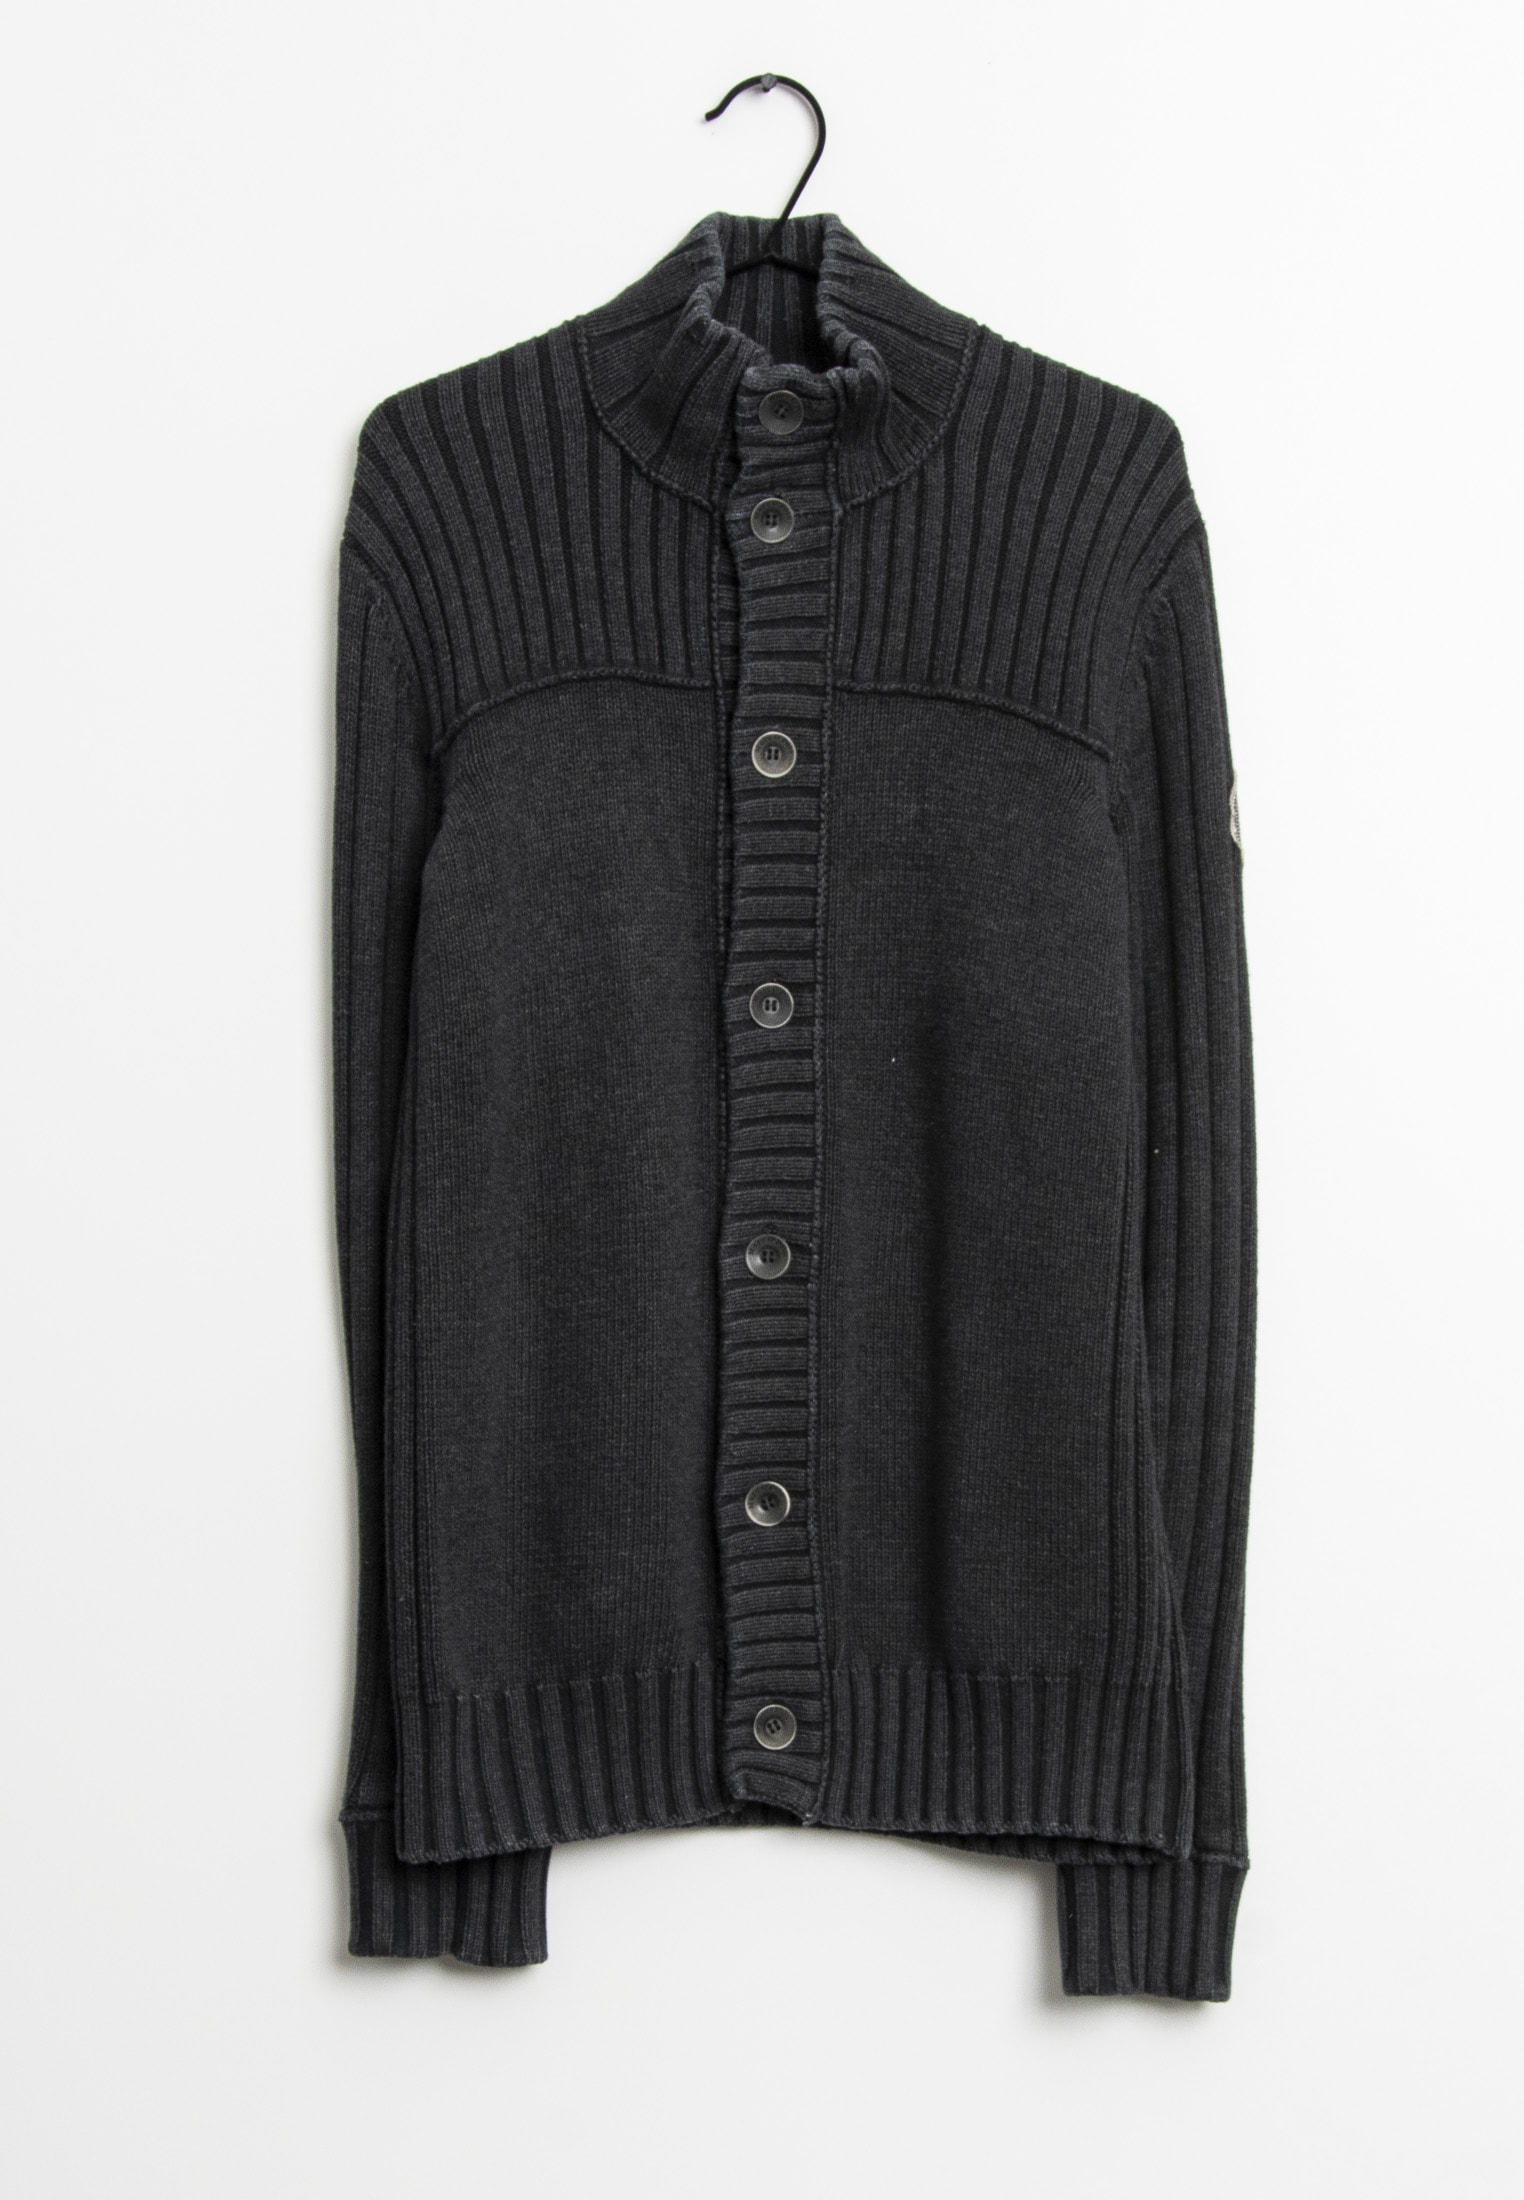 Marc O'Polo cardigan, sort, L